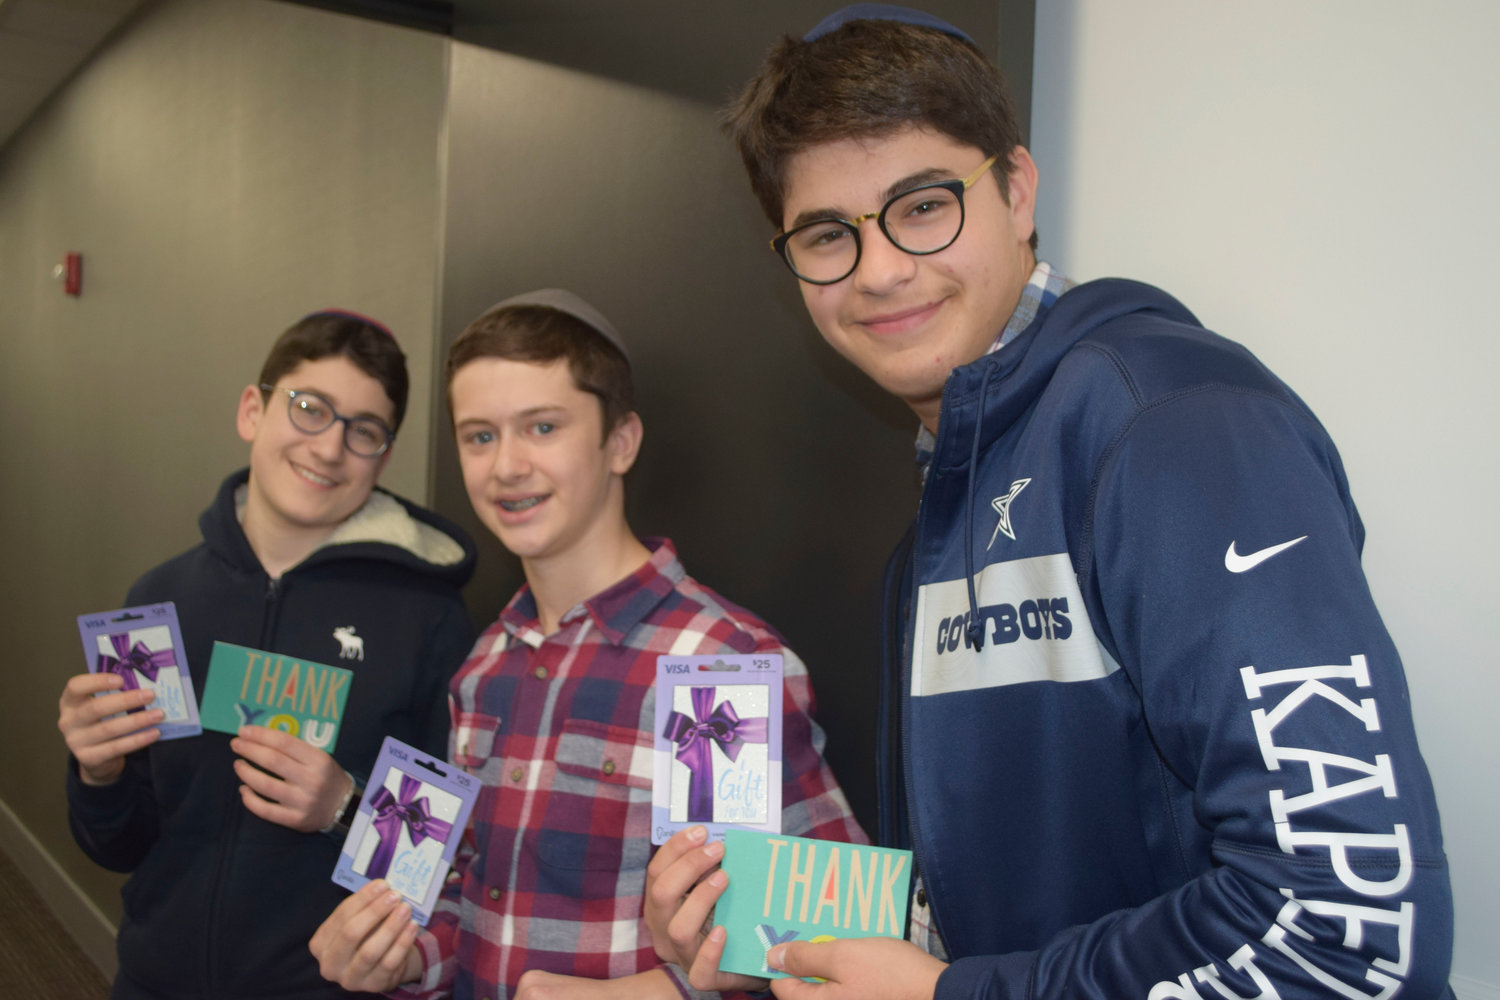 Five Towns residents, Chaim Hecht, left, Shmuel Jacobs and Zaki Kapetas were rewarded for their great deed with $25 Visa cards from Signature Bank.